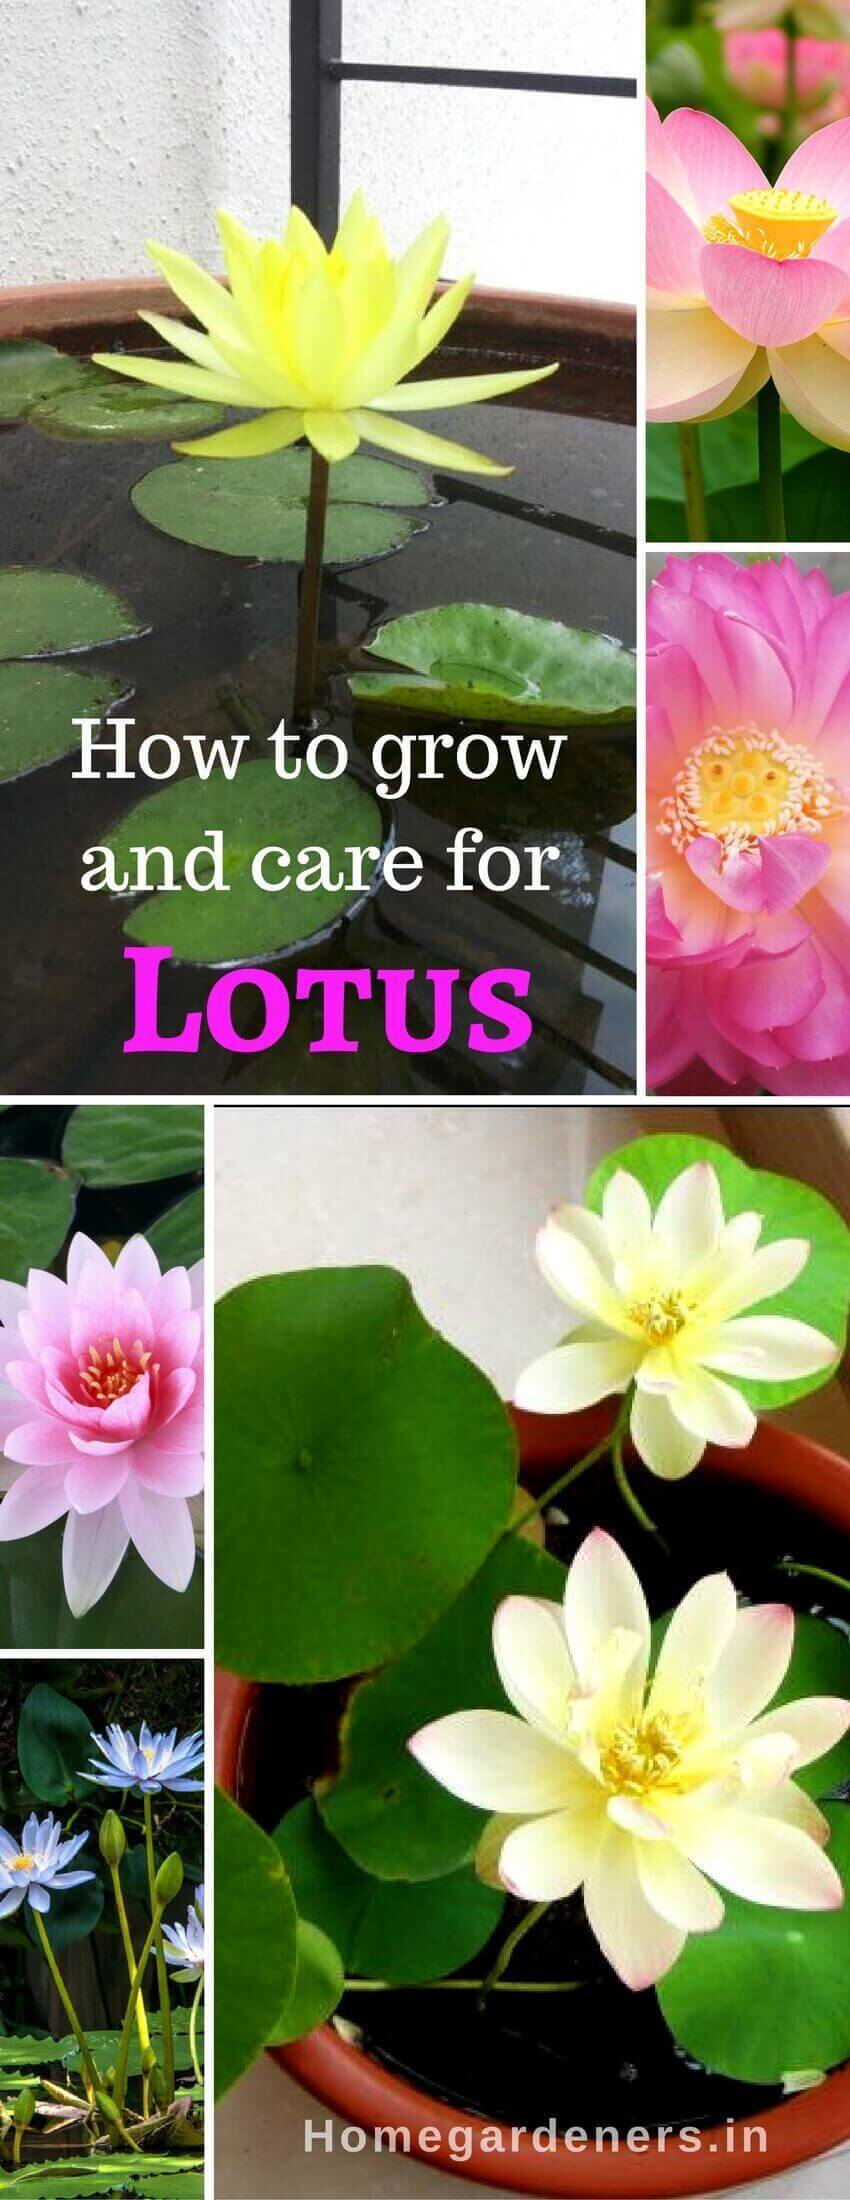 Sacred lotus how to grow and care for lotus plants home gardeners sacred lotus how to grow and care for lotus plants izmirmasajfo Image collections